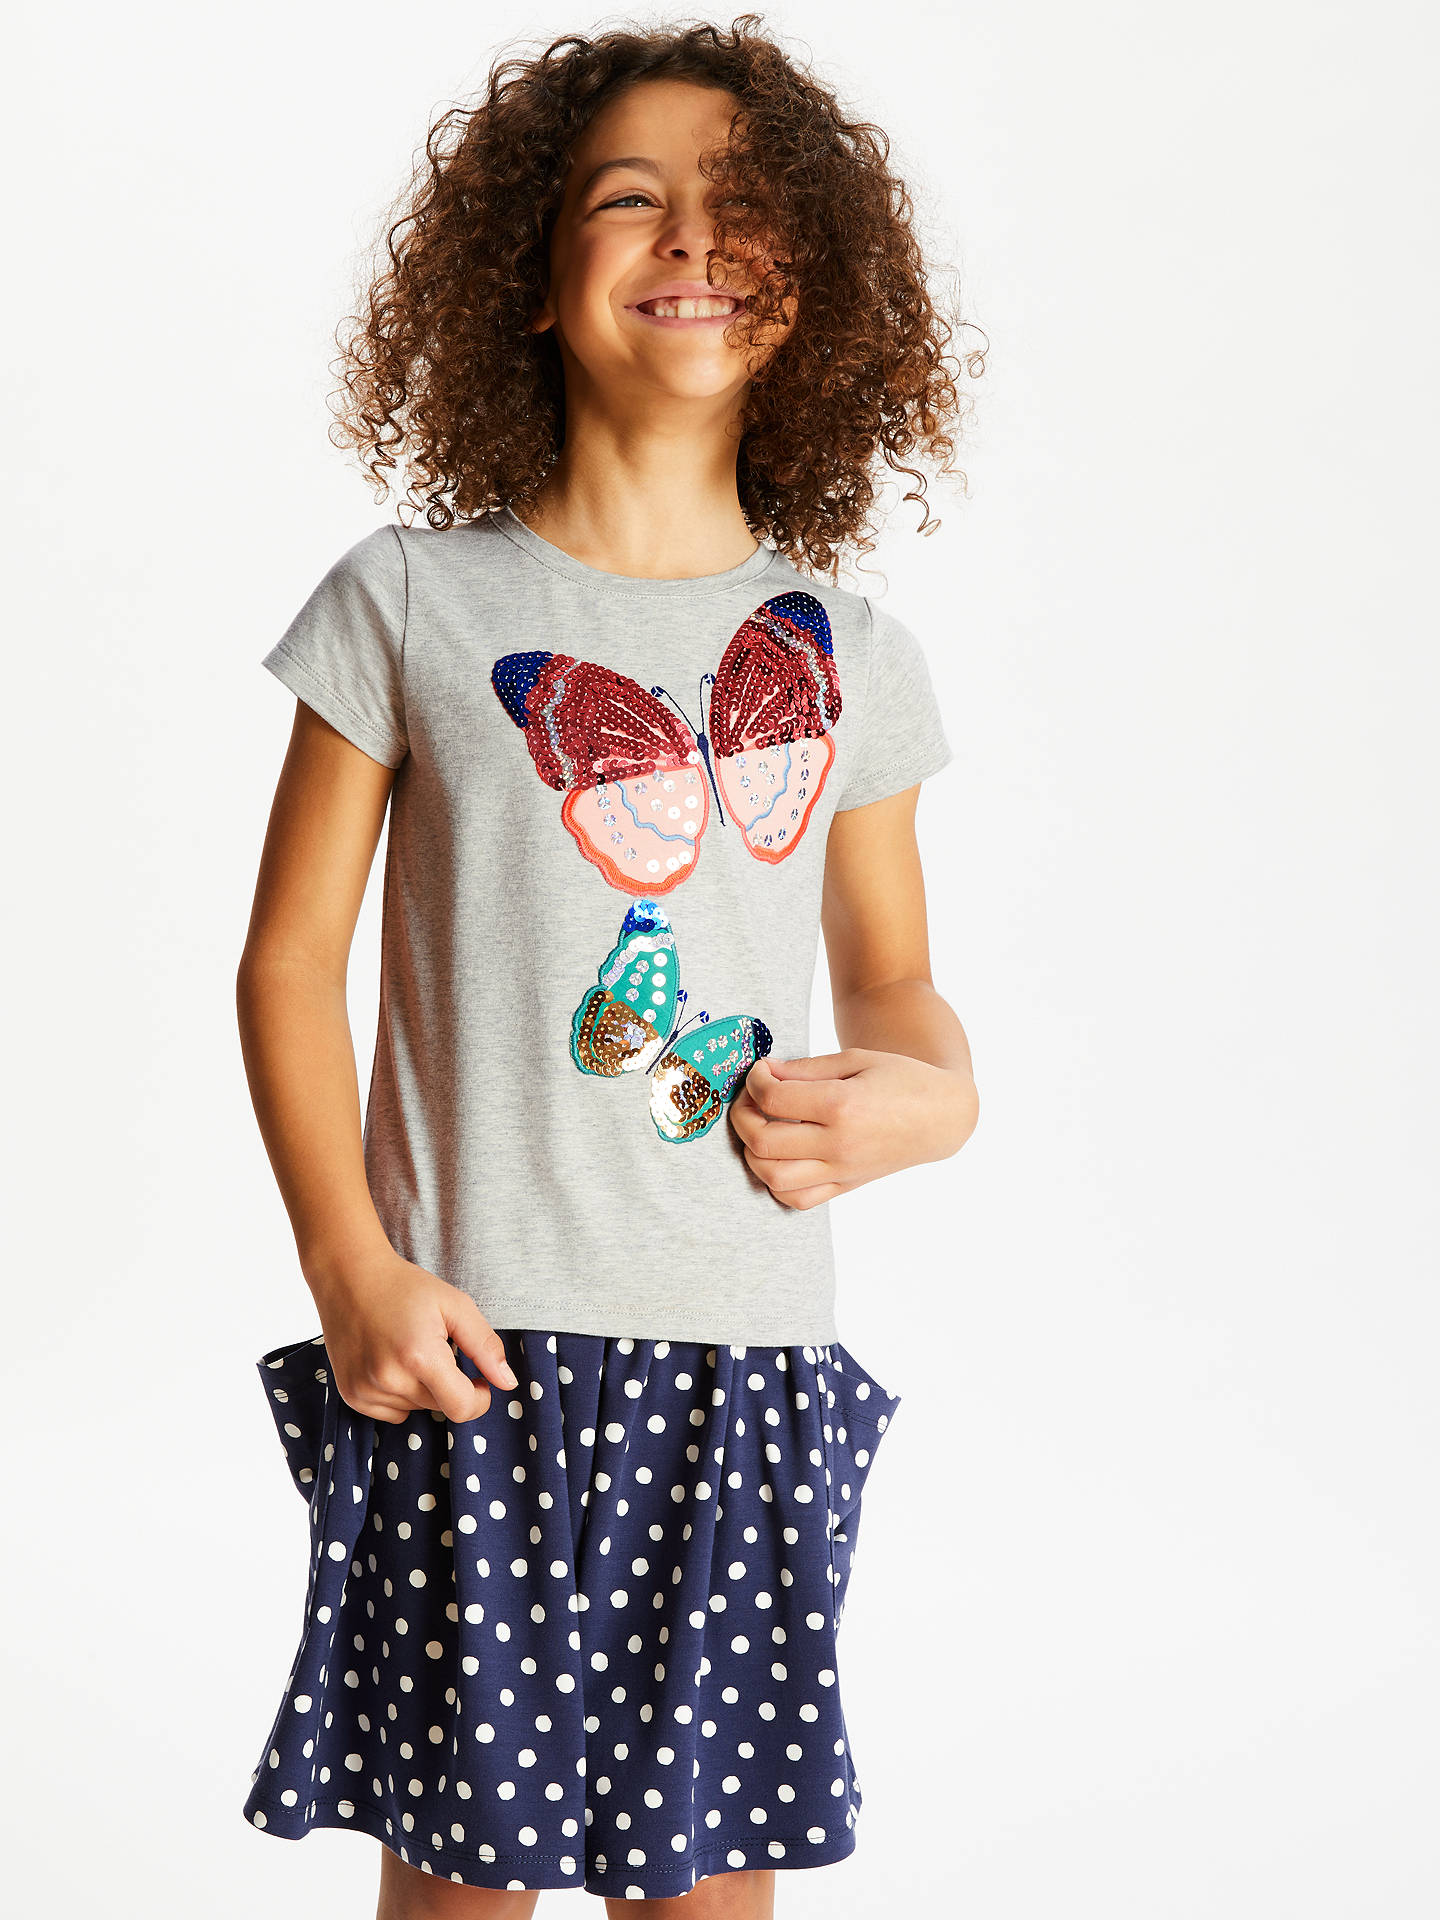 bba8e0fa Buy John Lewis & Partners Girls' Butterfly Sequin T-Shirt, Grey, 12 ...